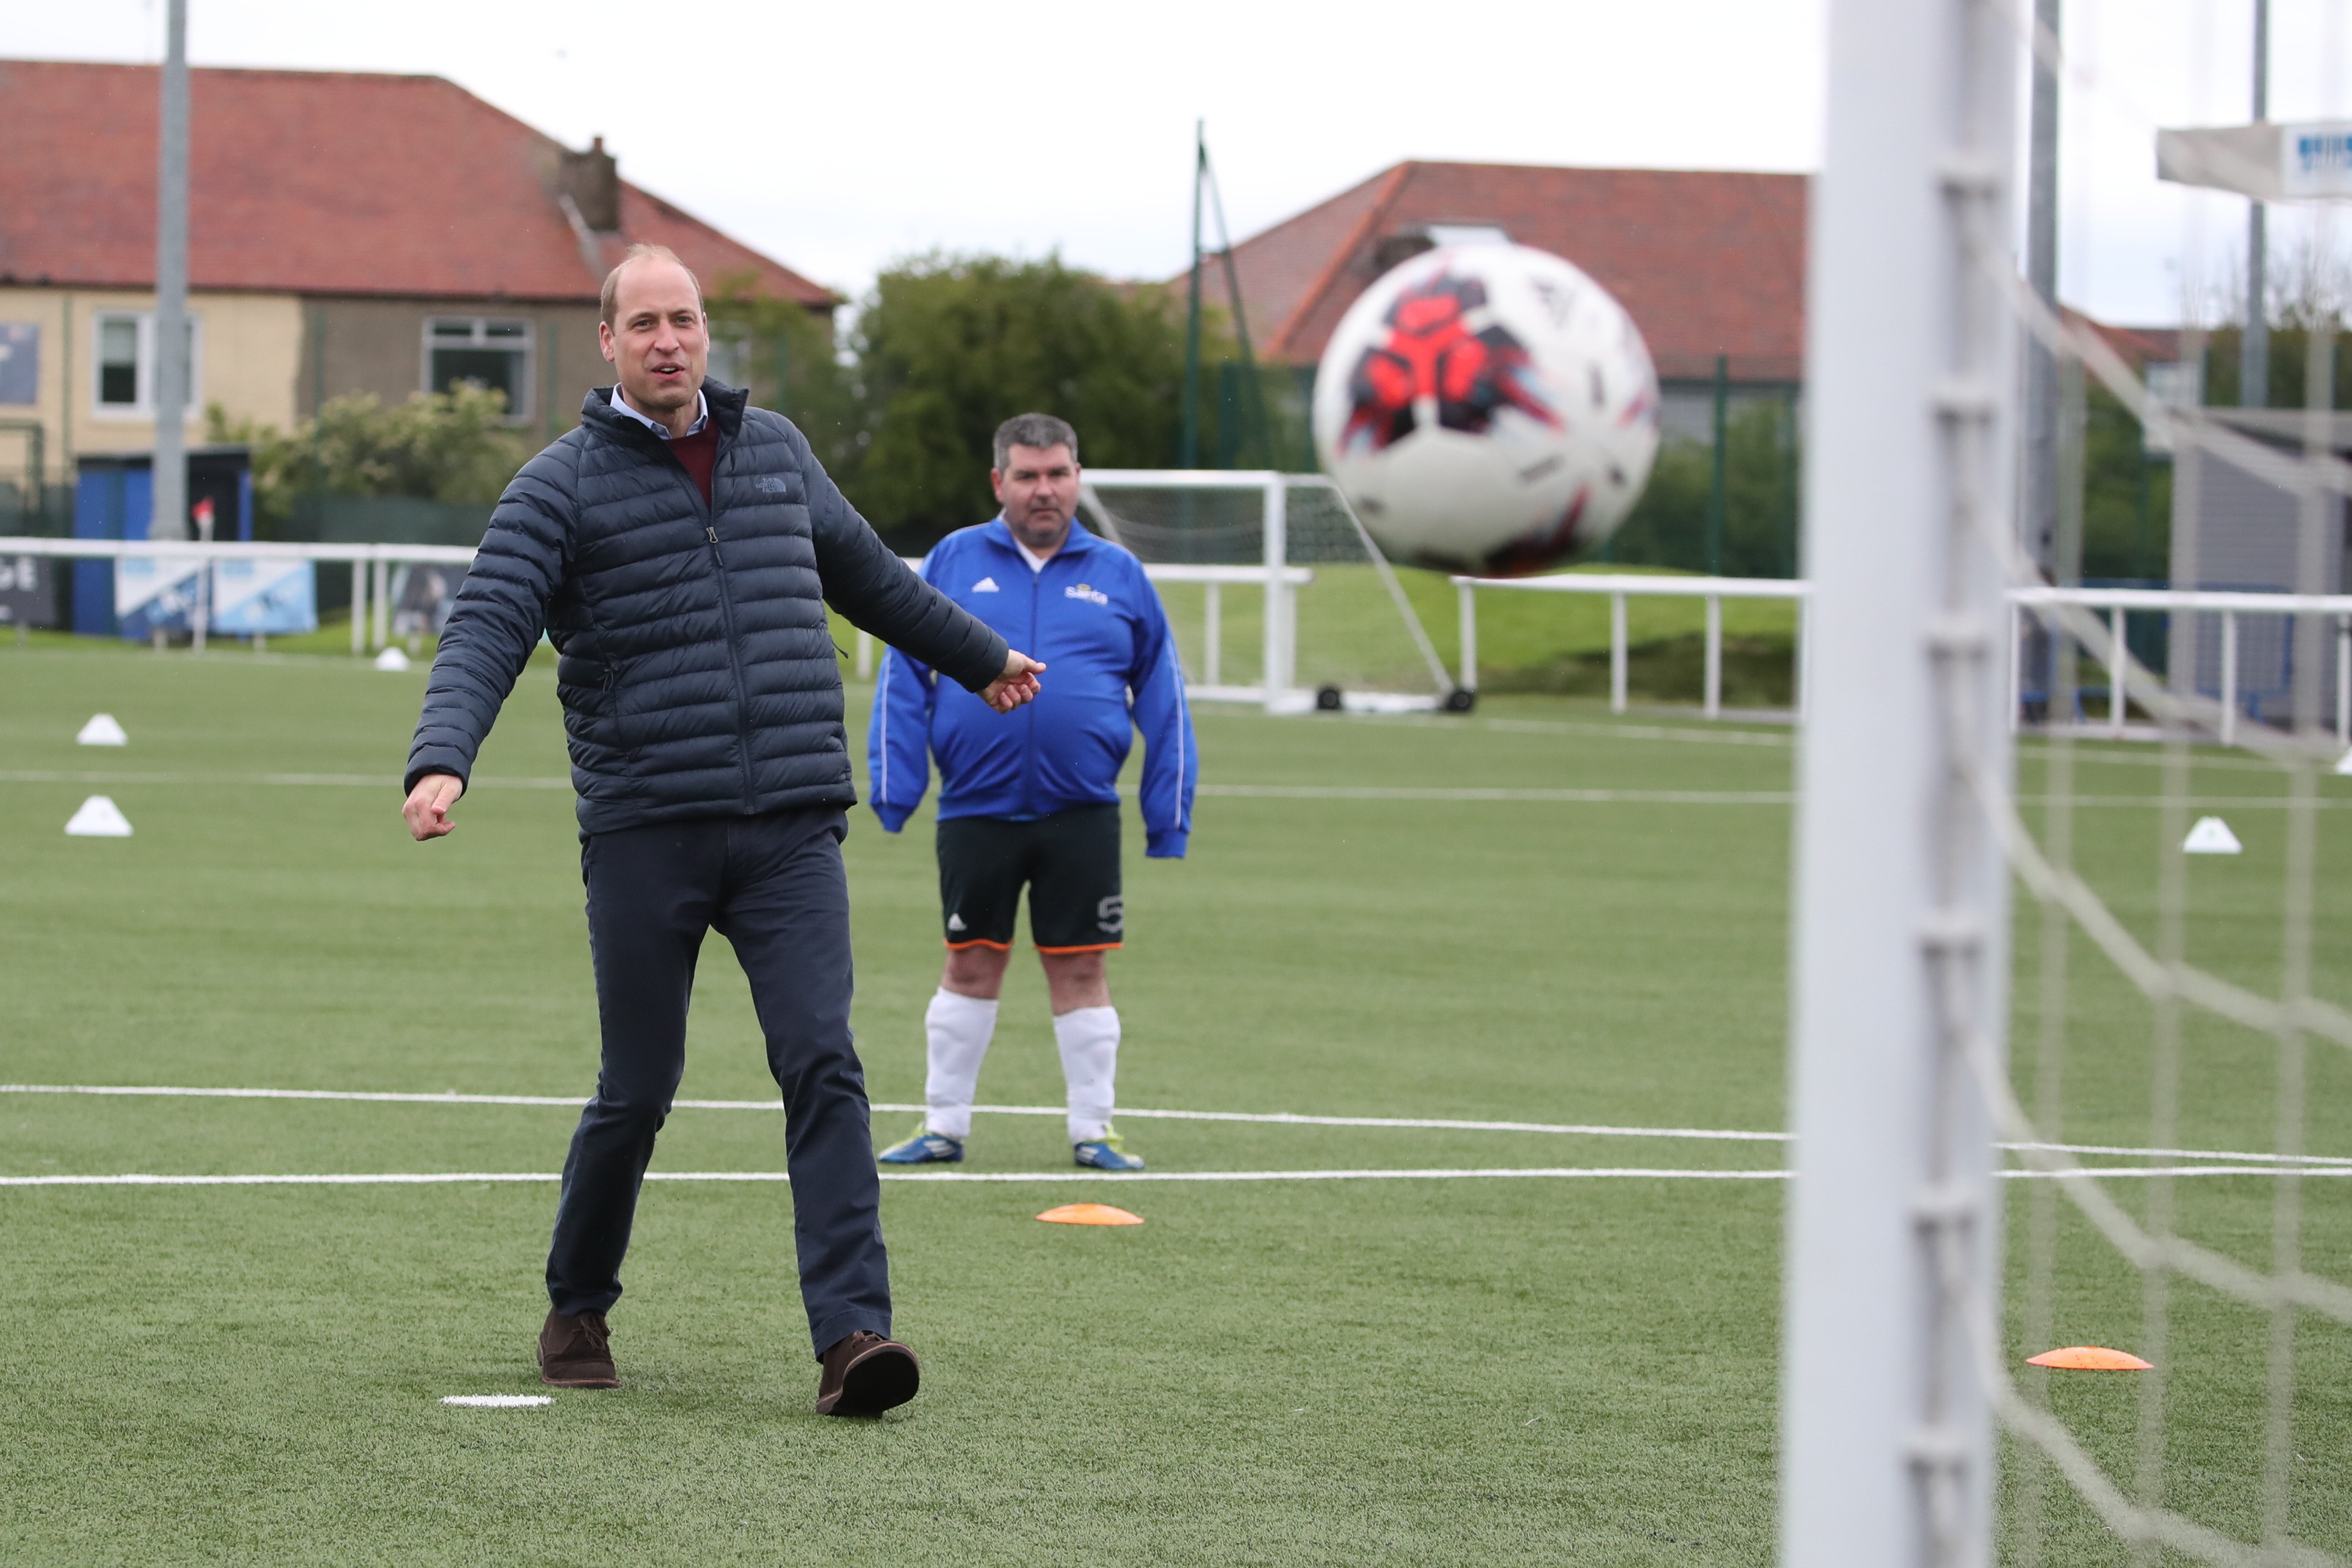 <p>The Duke of Cambridge on the pitch during a visit to Spartans FC's Ainslie Park Stadium in Edinburgh to hear about initiatives in Scottish football that champion mental health ahead of the Scottish Cup Final on Saturday. Picture date: Friday May 21, 2021.</p>